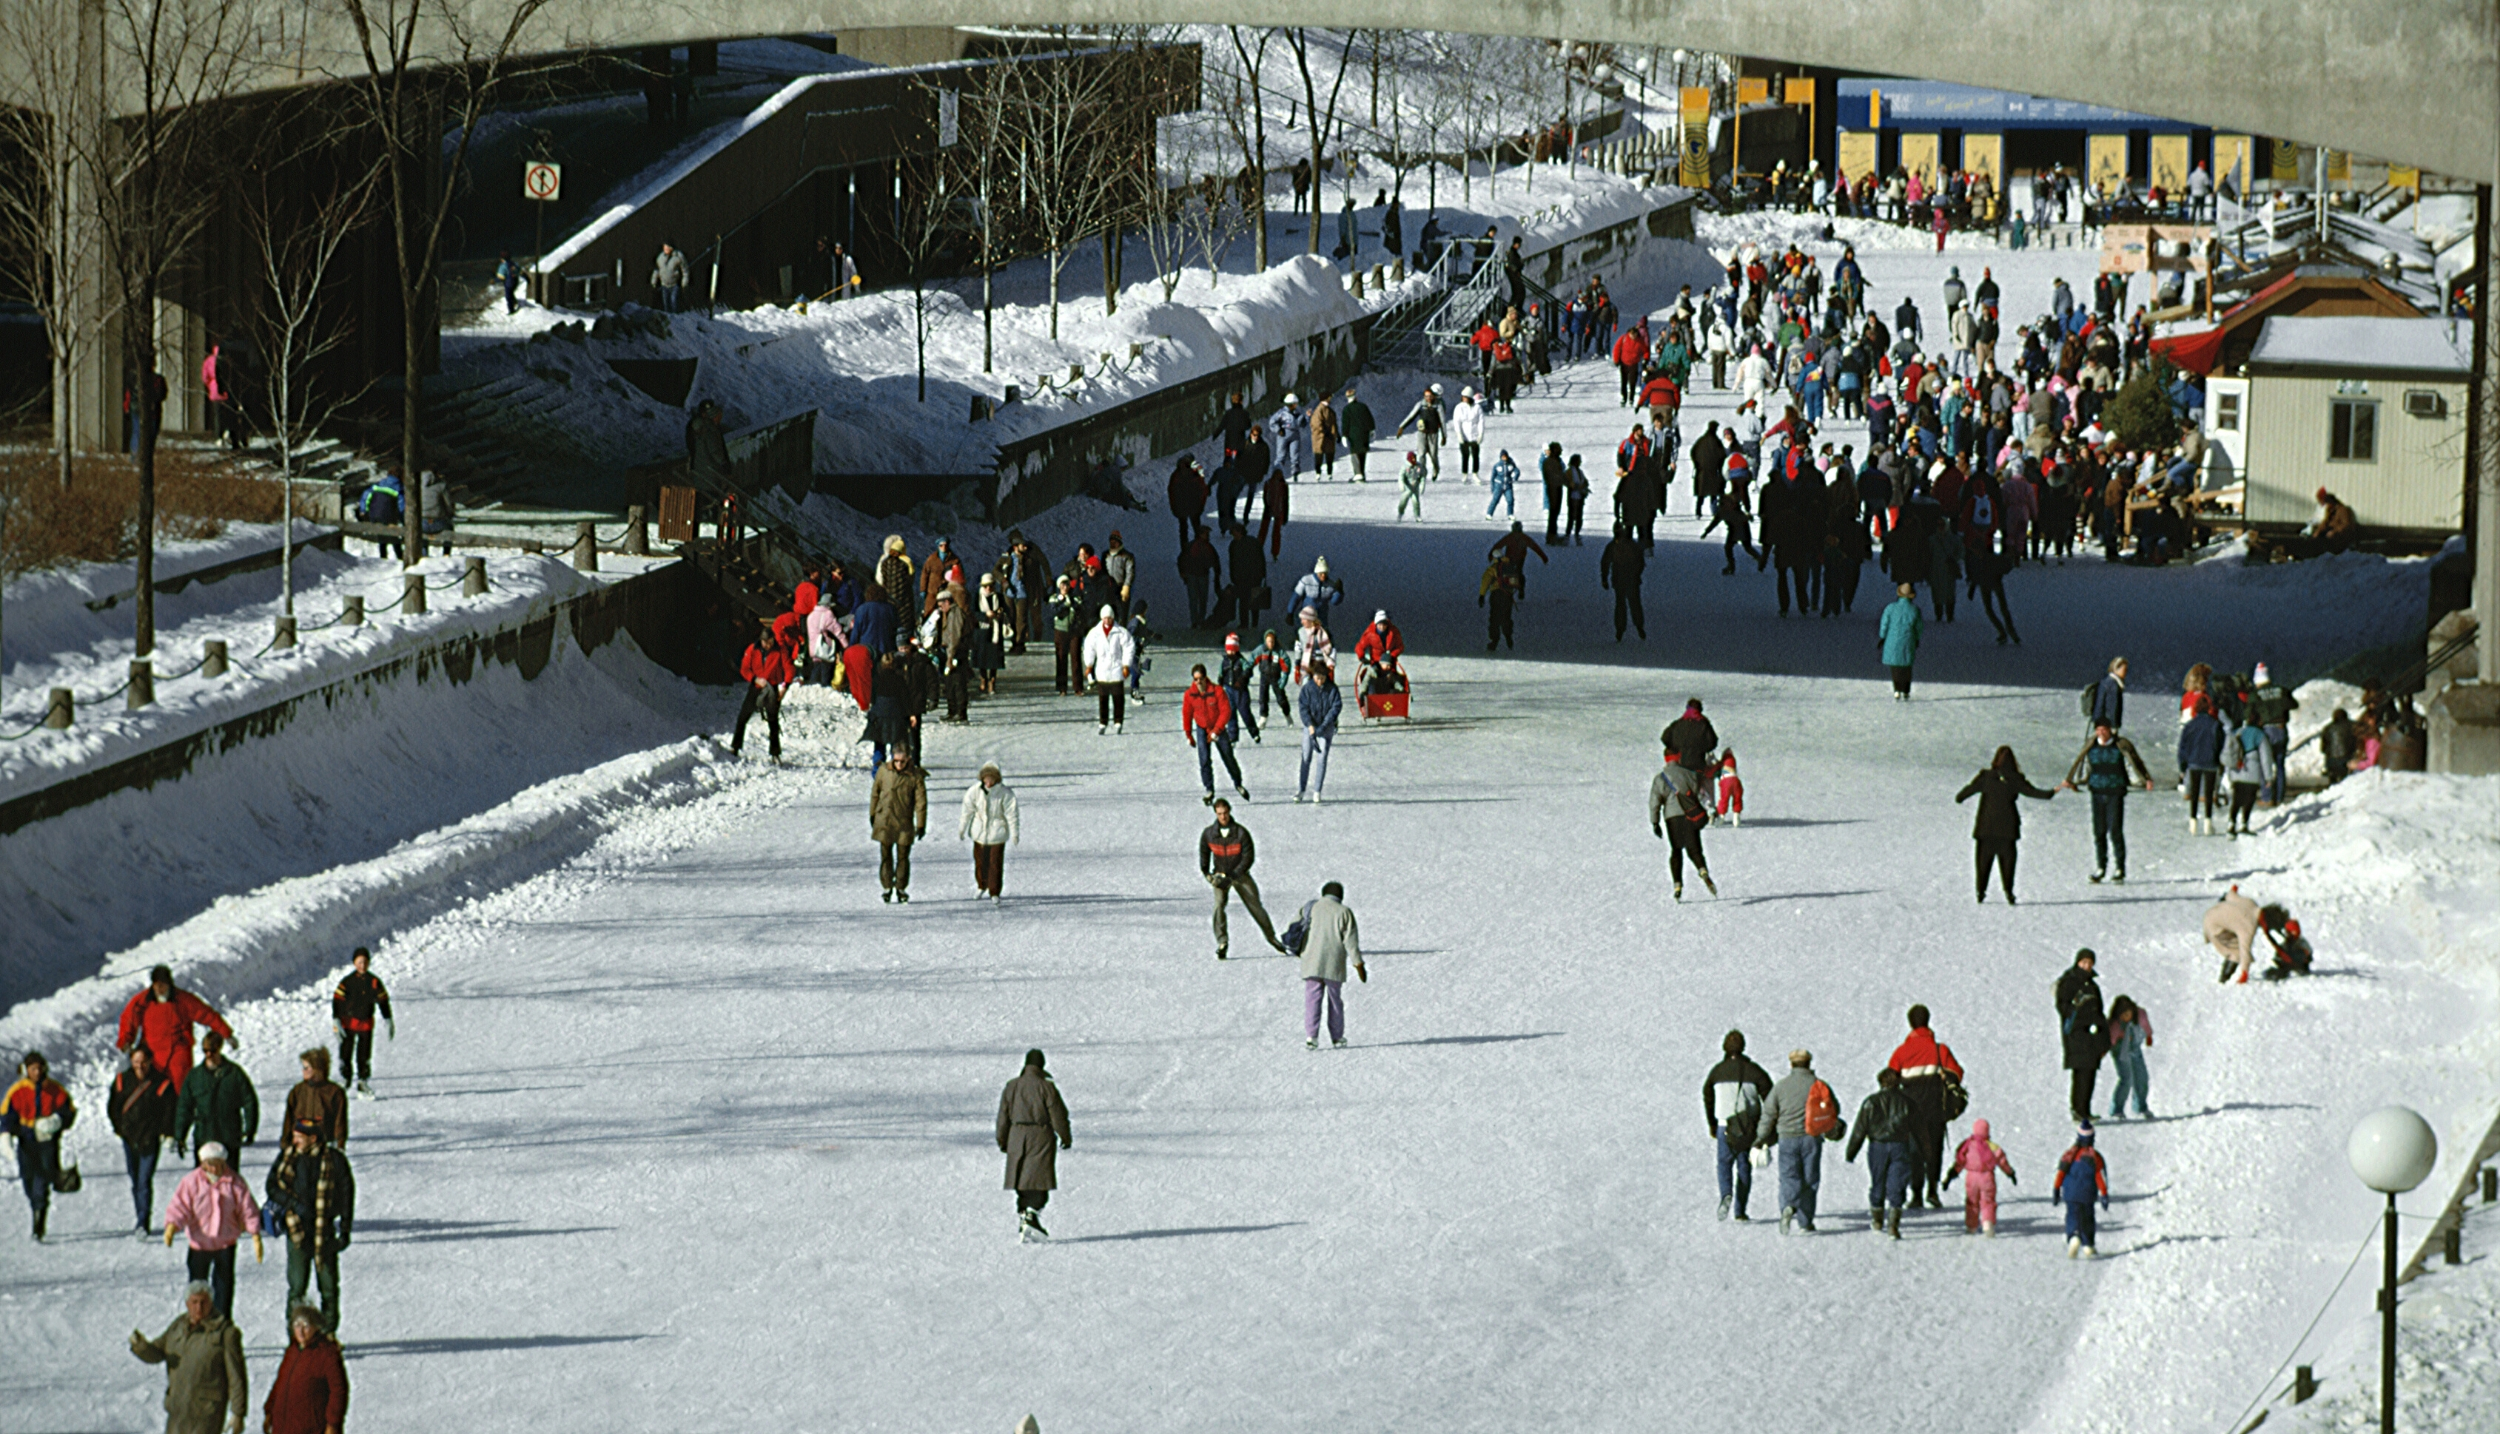 People ice skating at Rideau Canal Skateway in Ottawa Canada